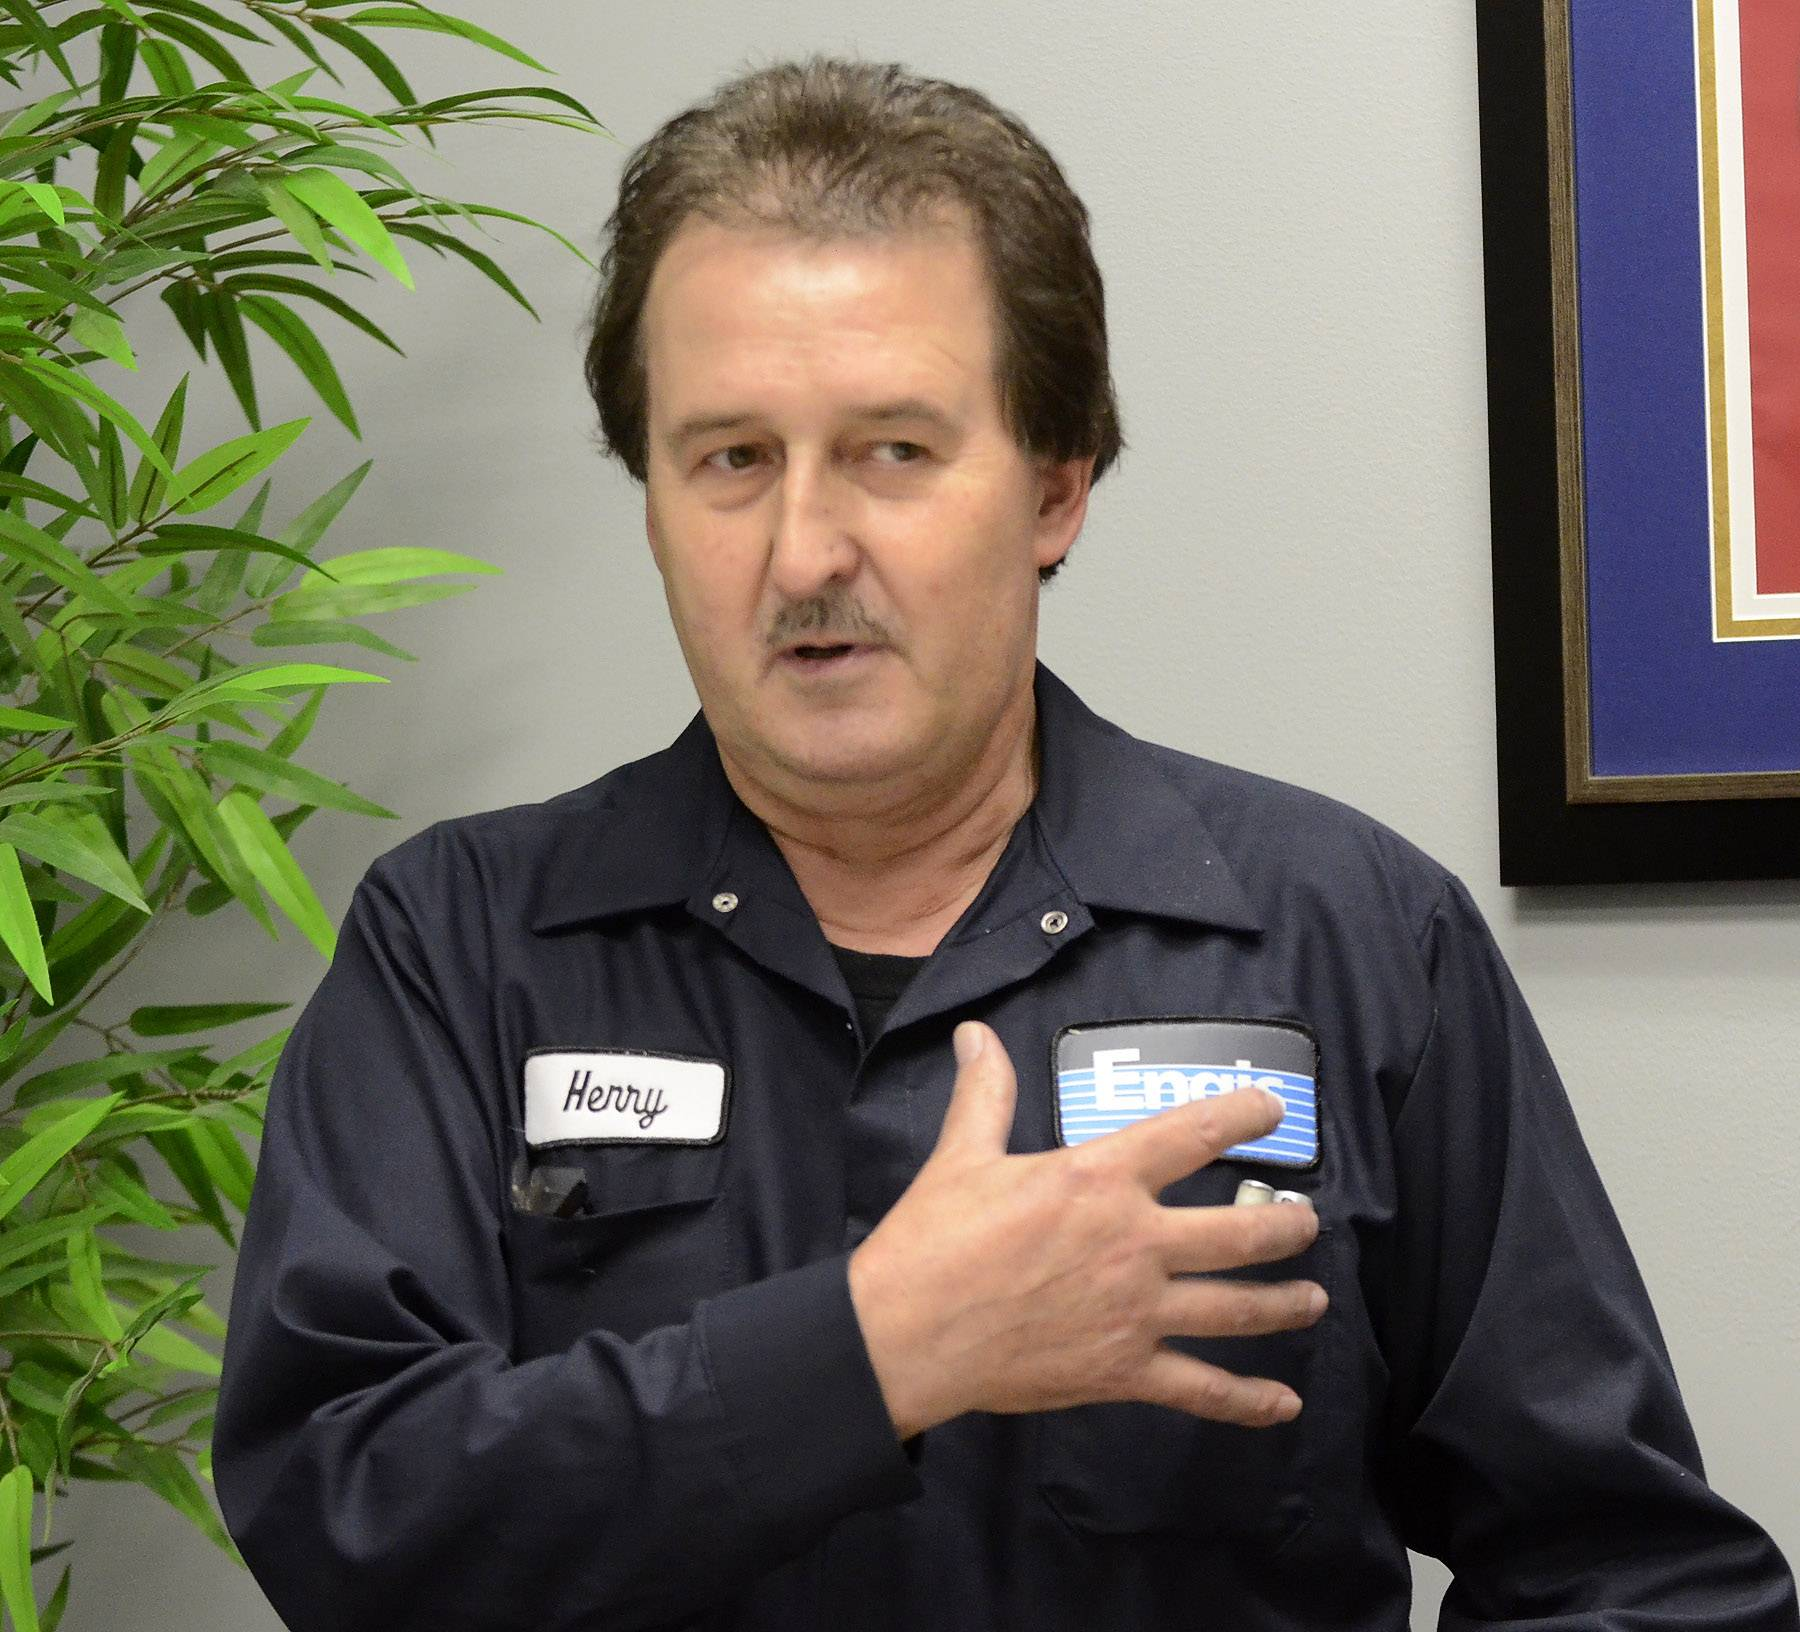 Engis Corp. employee Henry Kosinski recounts his experience having cardiac arrest at work on July 14.